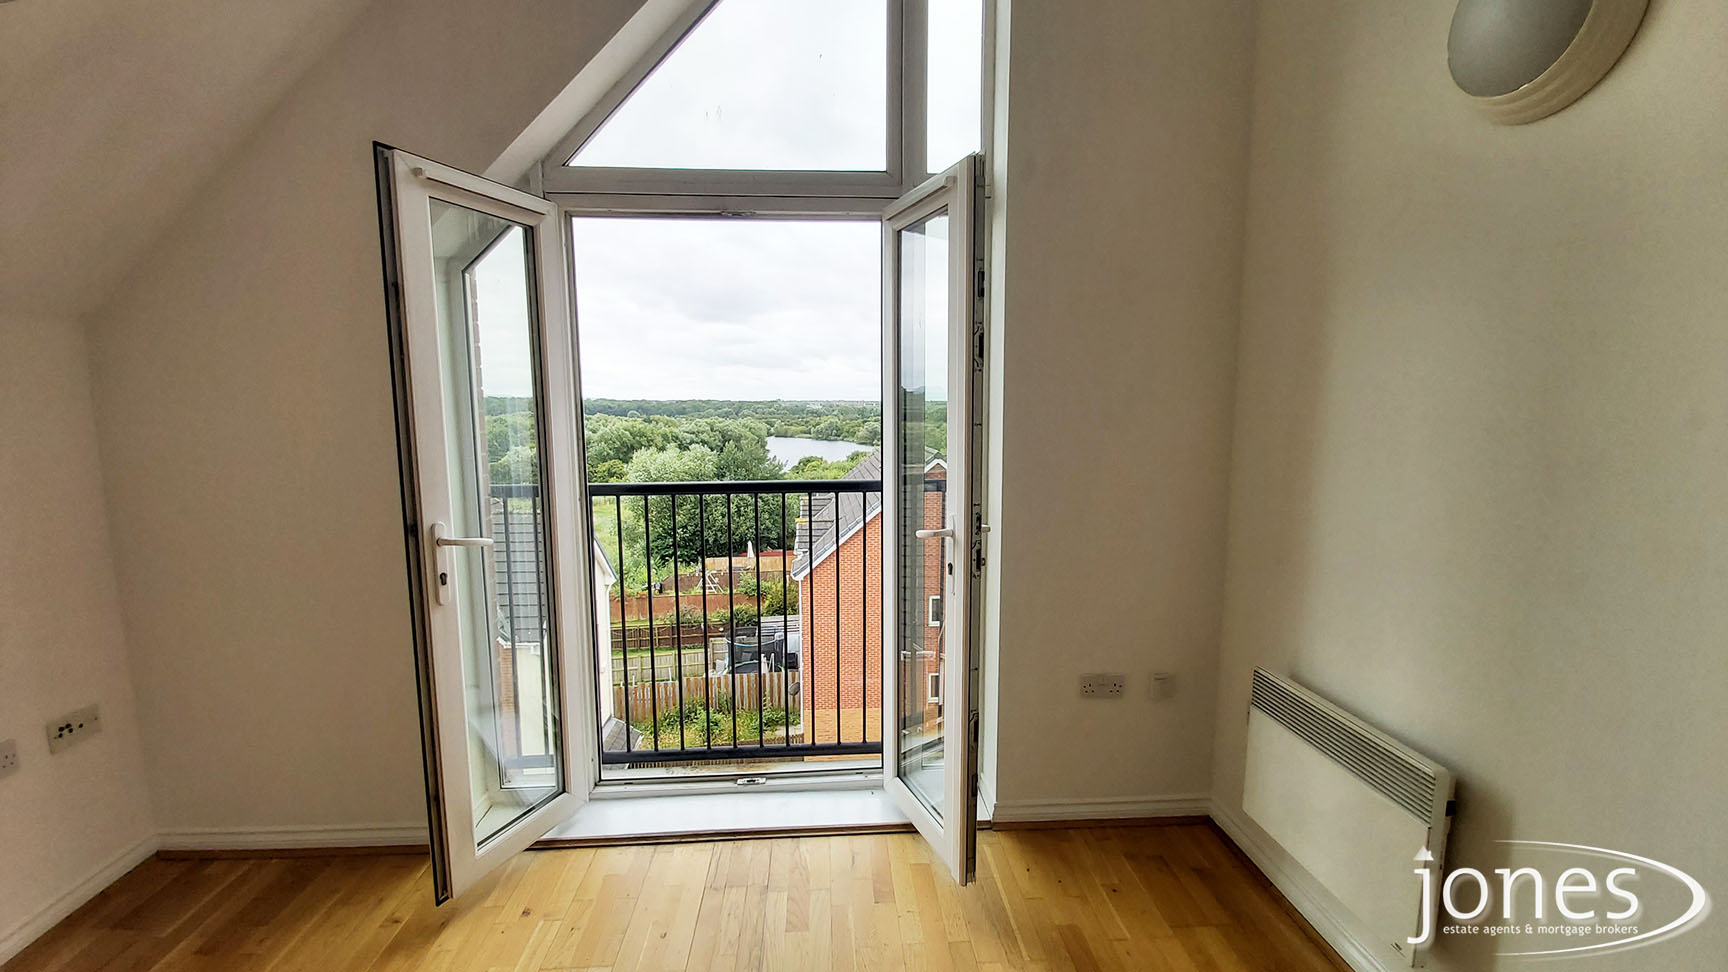 Home for Sale Let - Photo 03 Willow Sage Court, Stockton on Tees, TS18 3UQ